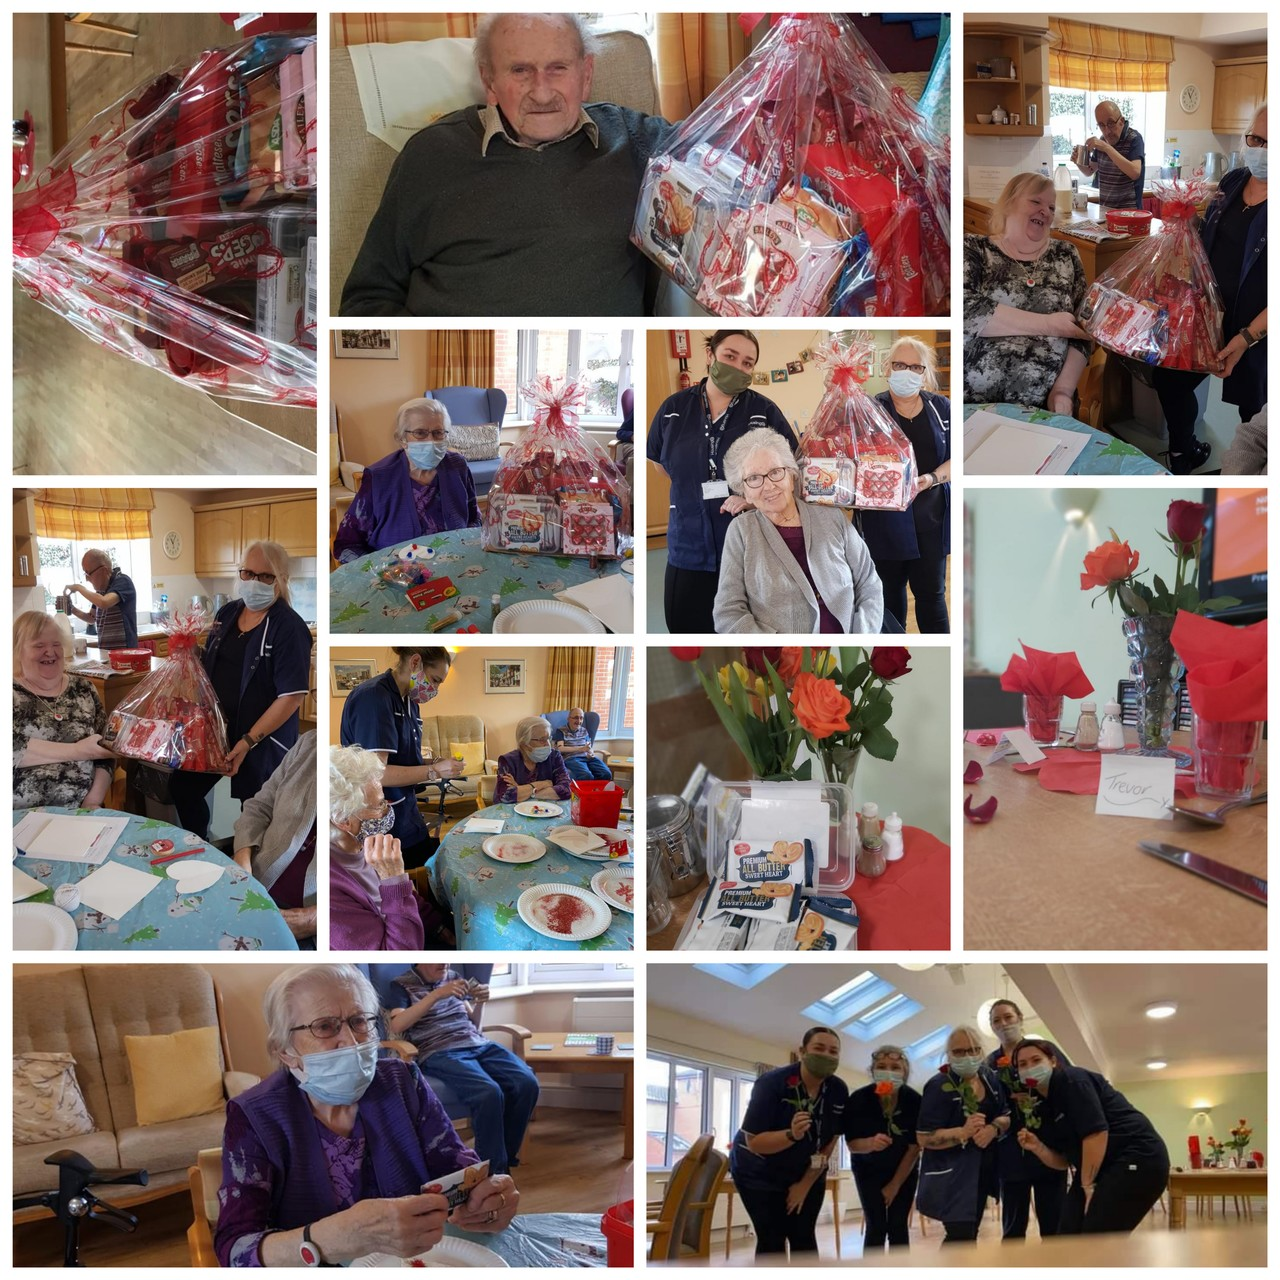 Rresidents at paddy gere house enjoying there valentines hamper. All looking happy and well. | Asda Ipswich